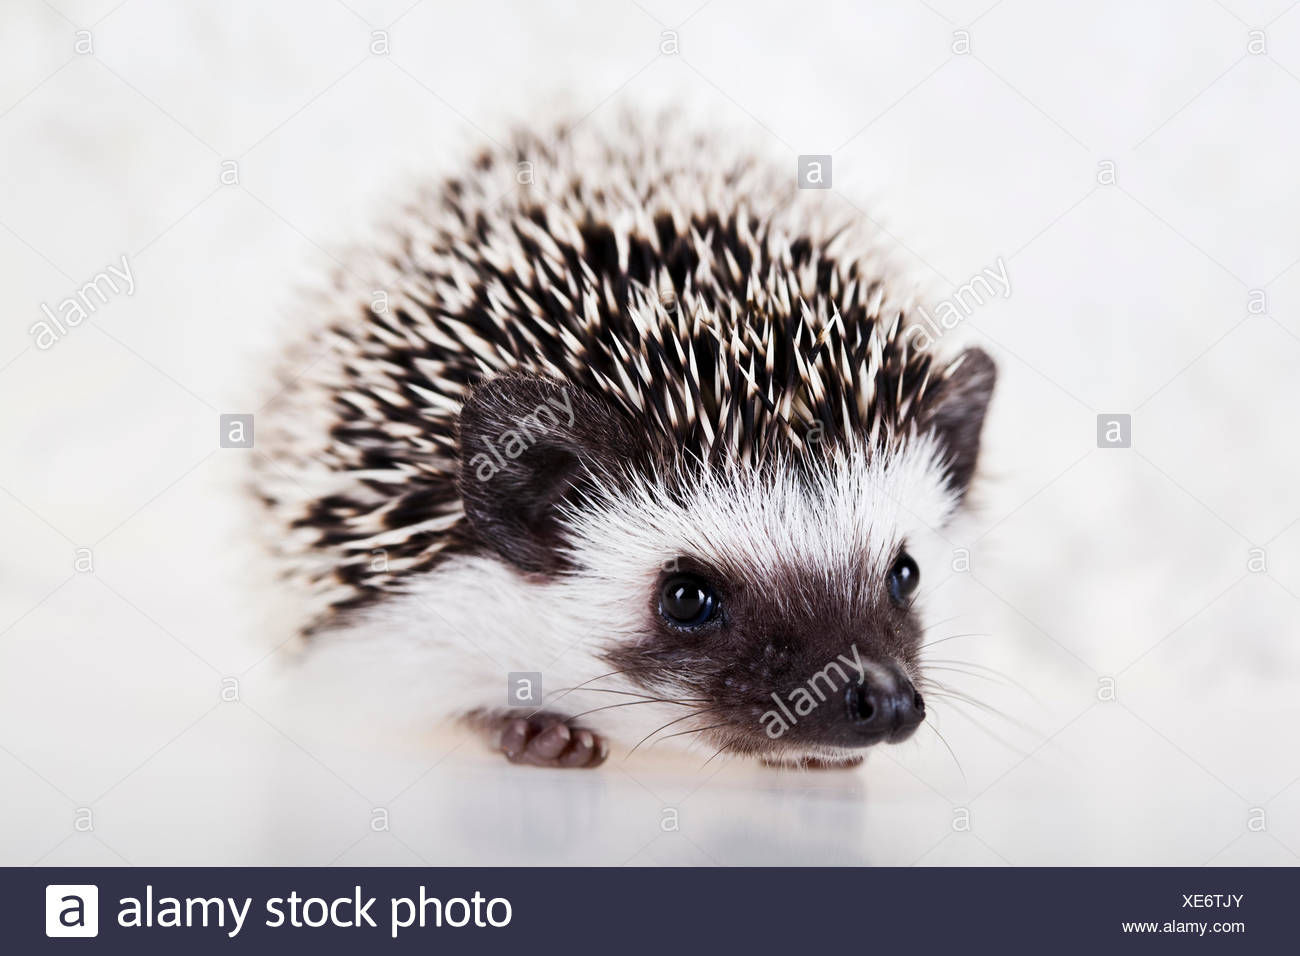 animal mammal creature - Stock Image